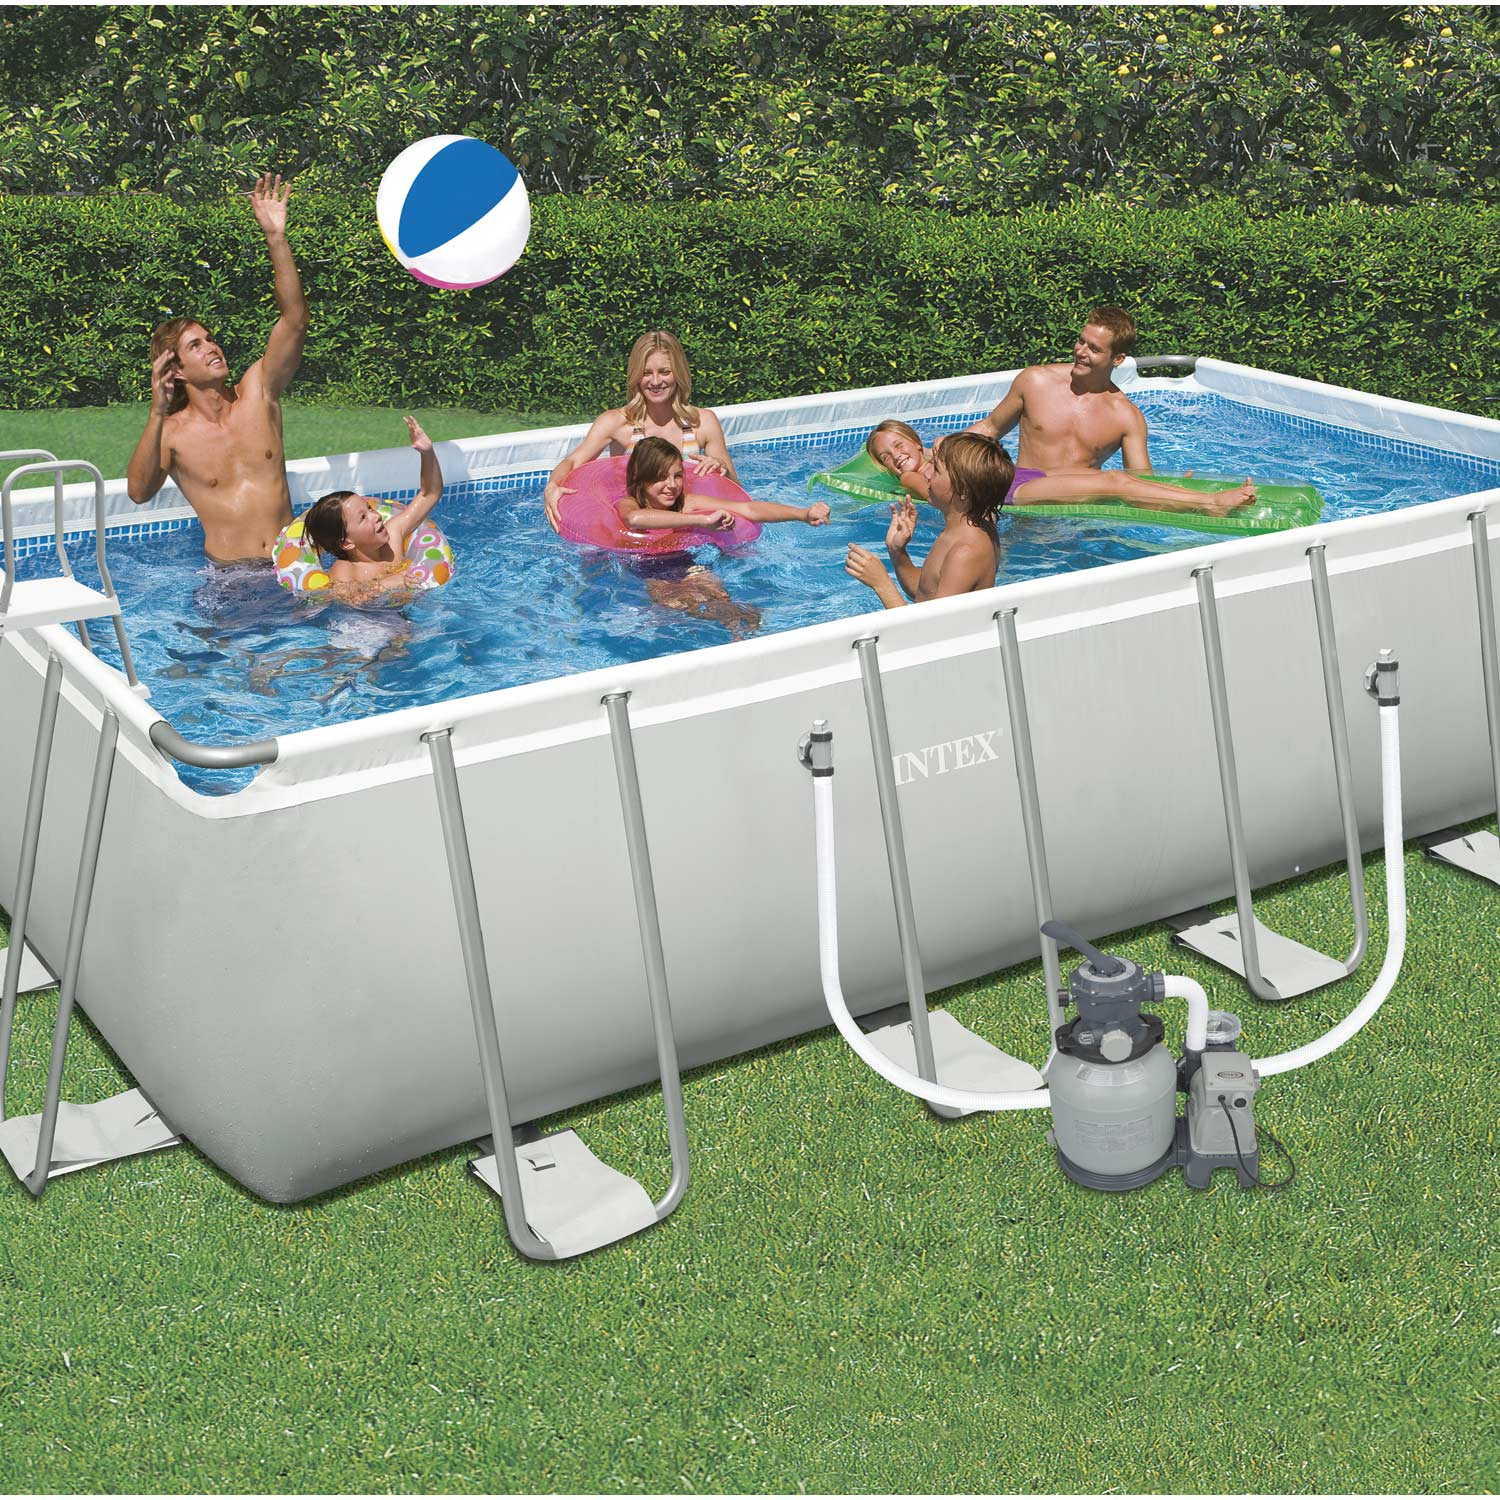 Piscine hors sol autoportante tubulaire ultra silver intex for Coffrage pour piscine hors sol